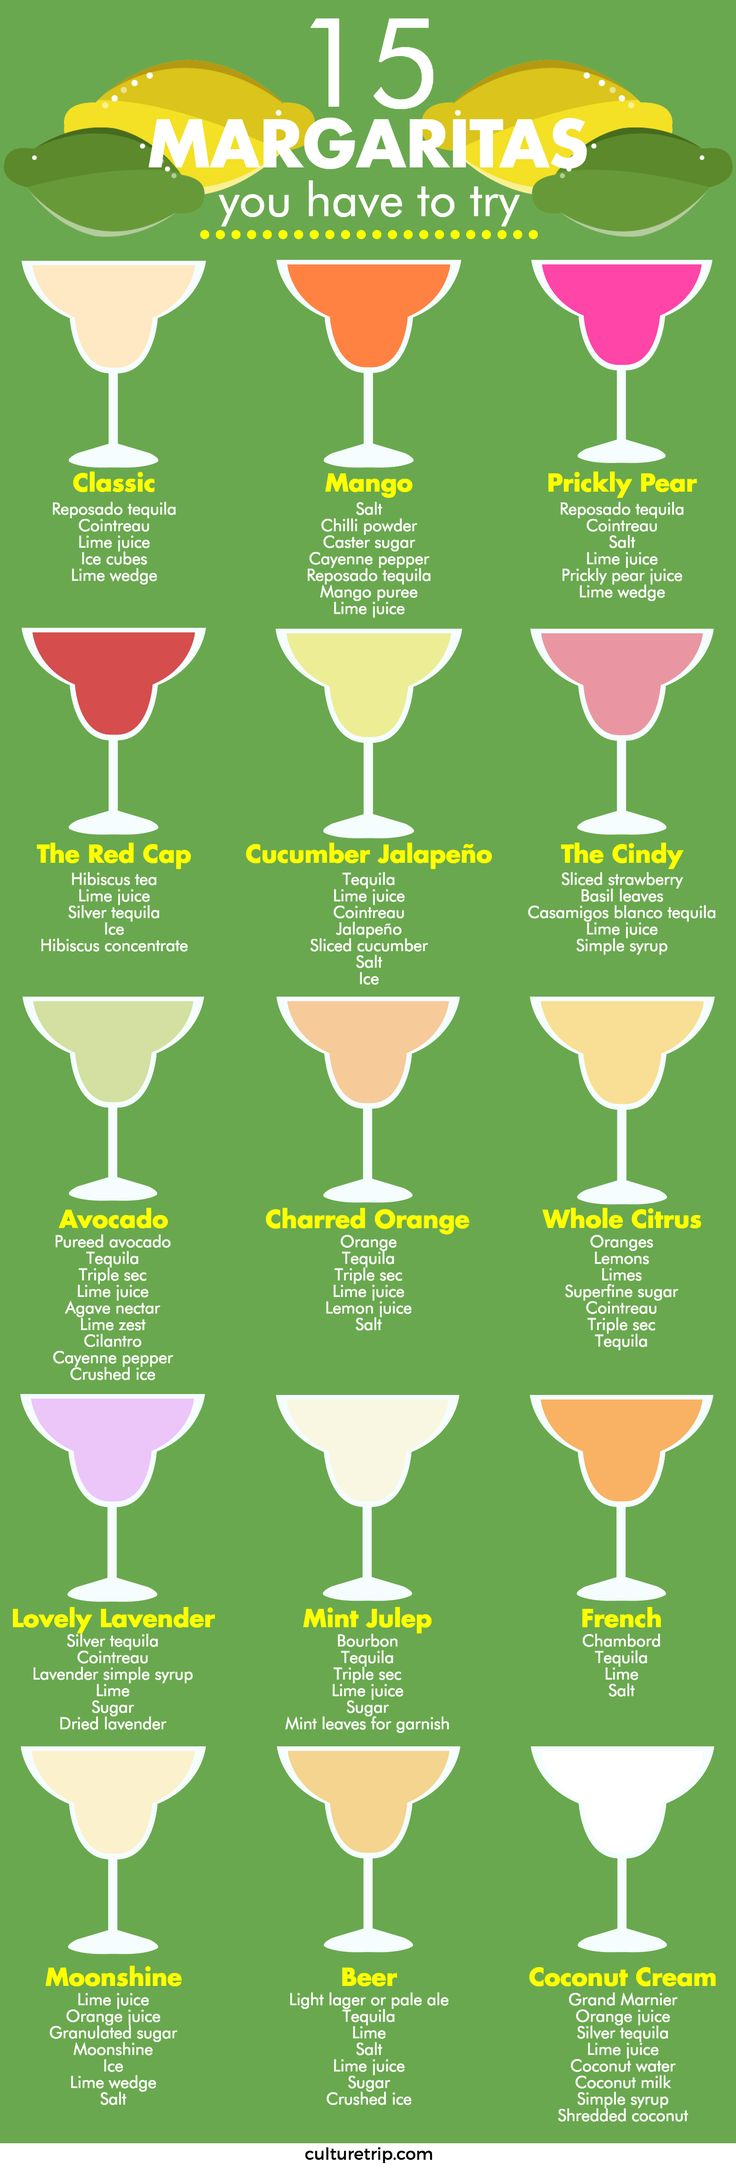 15 Margarita Recipes You Have To Try #Infografía #Infographic